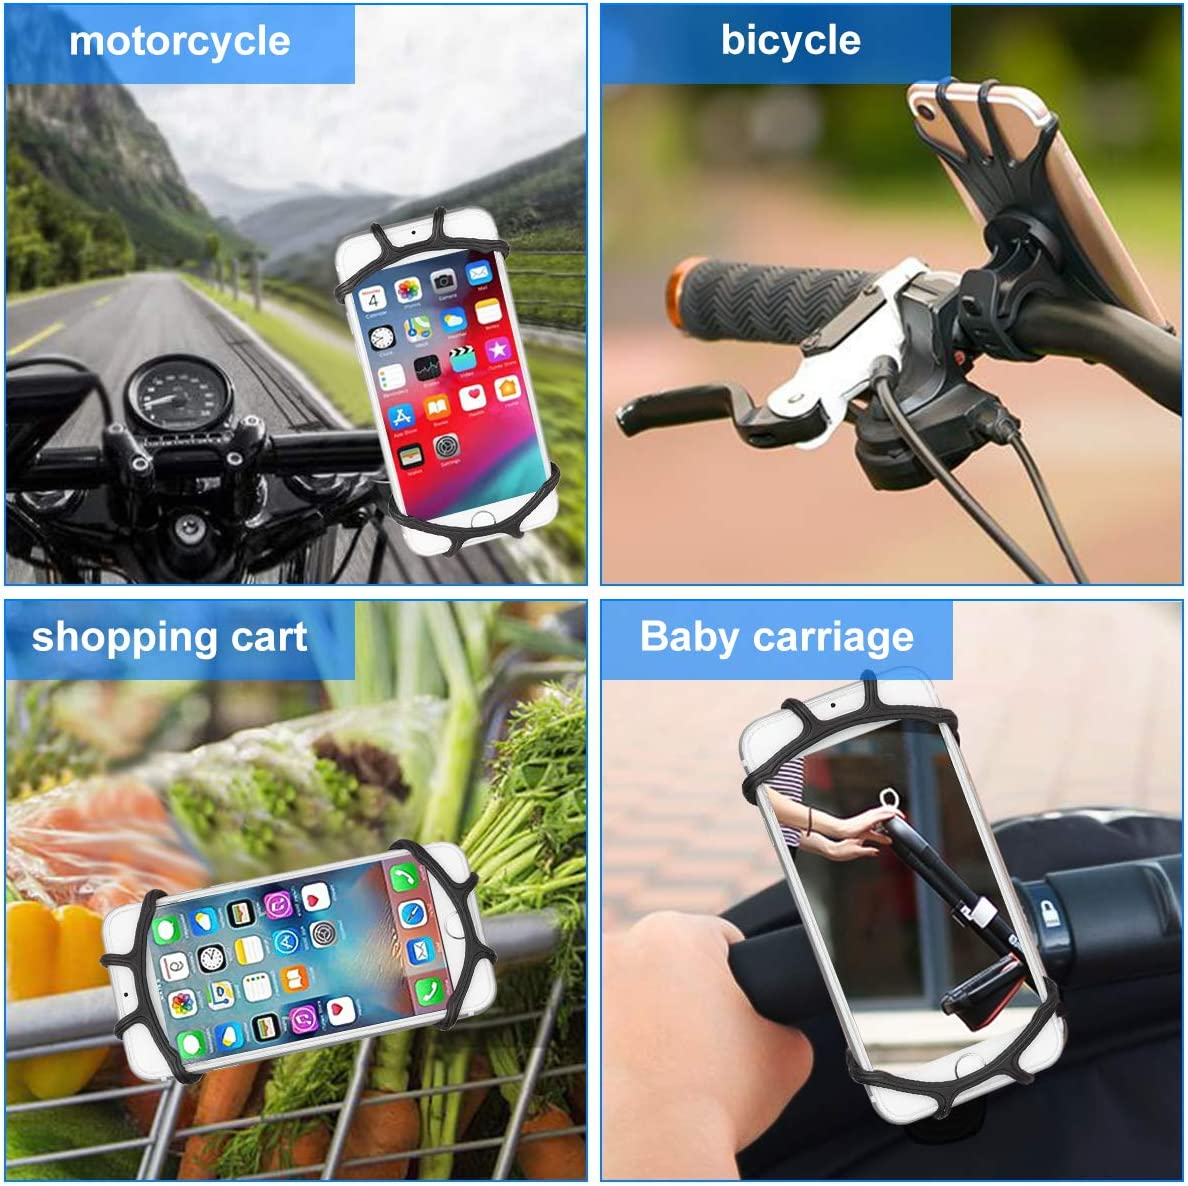 Bicycle /& Motorcycle Mobile Phone Holder Silicone Bike Phone Mount Compate with 4.0-6.5 Screen Mobile Phones and GPS Rotated 360 Degrees Perfect for Mountain Bike Scooter Stroller and Treadmill